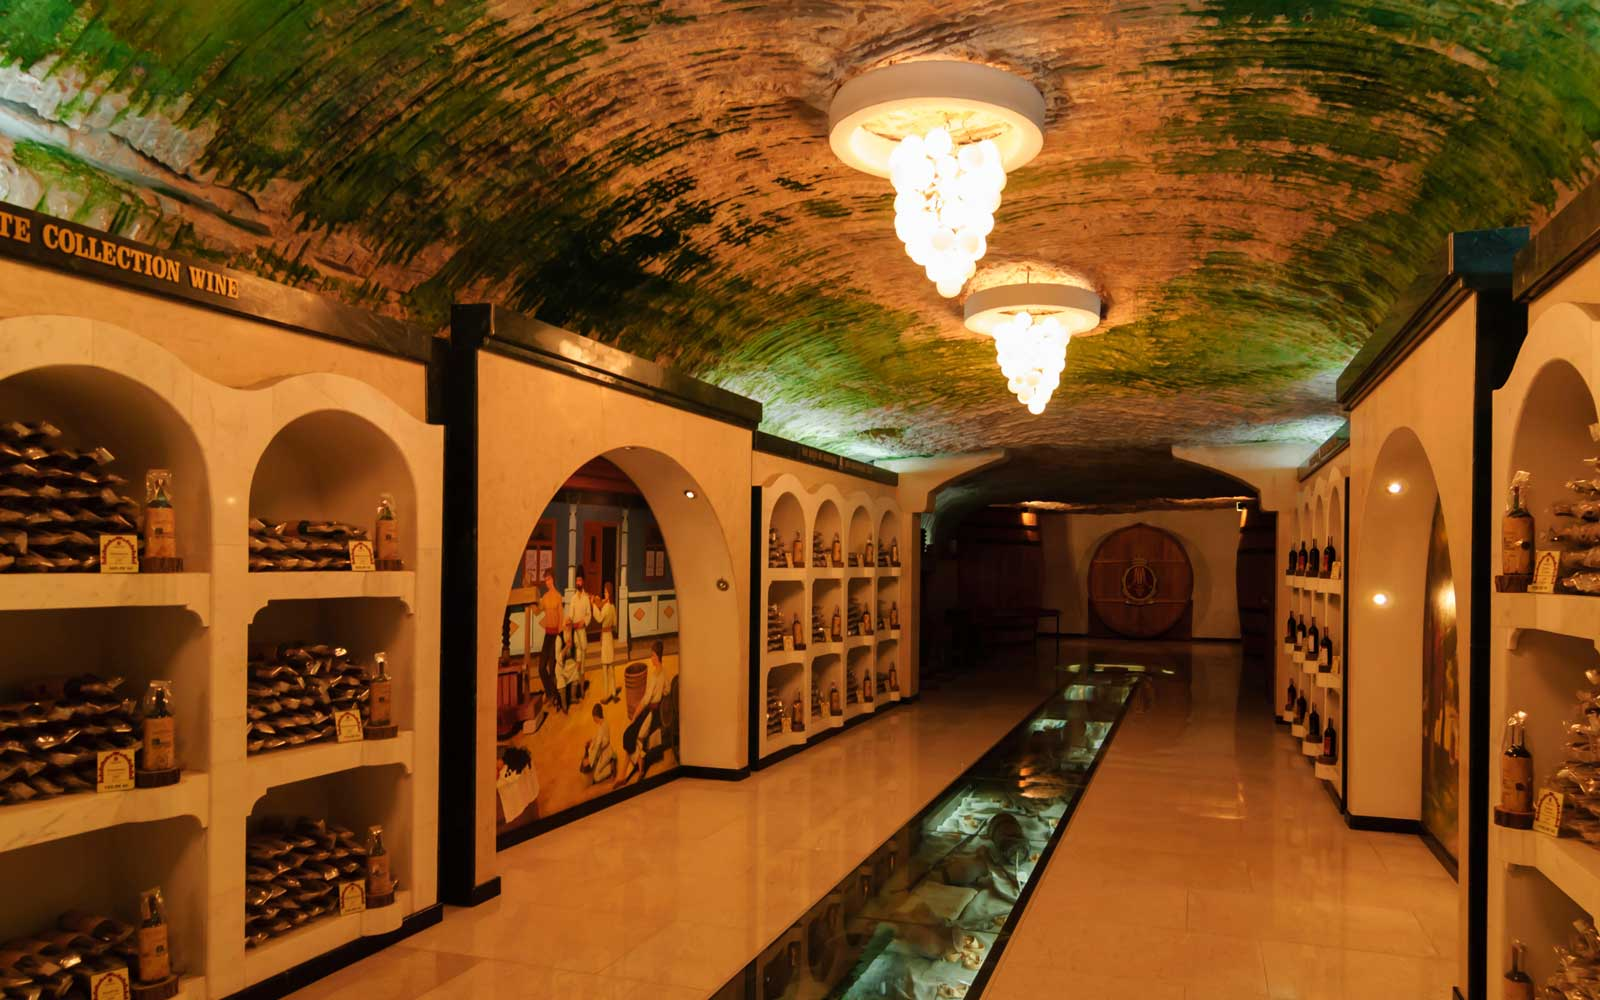 Moldova's 'Underground Wine City' Is Home to 1.5 Million Bottles